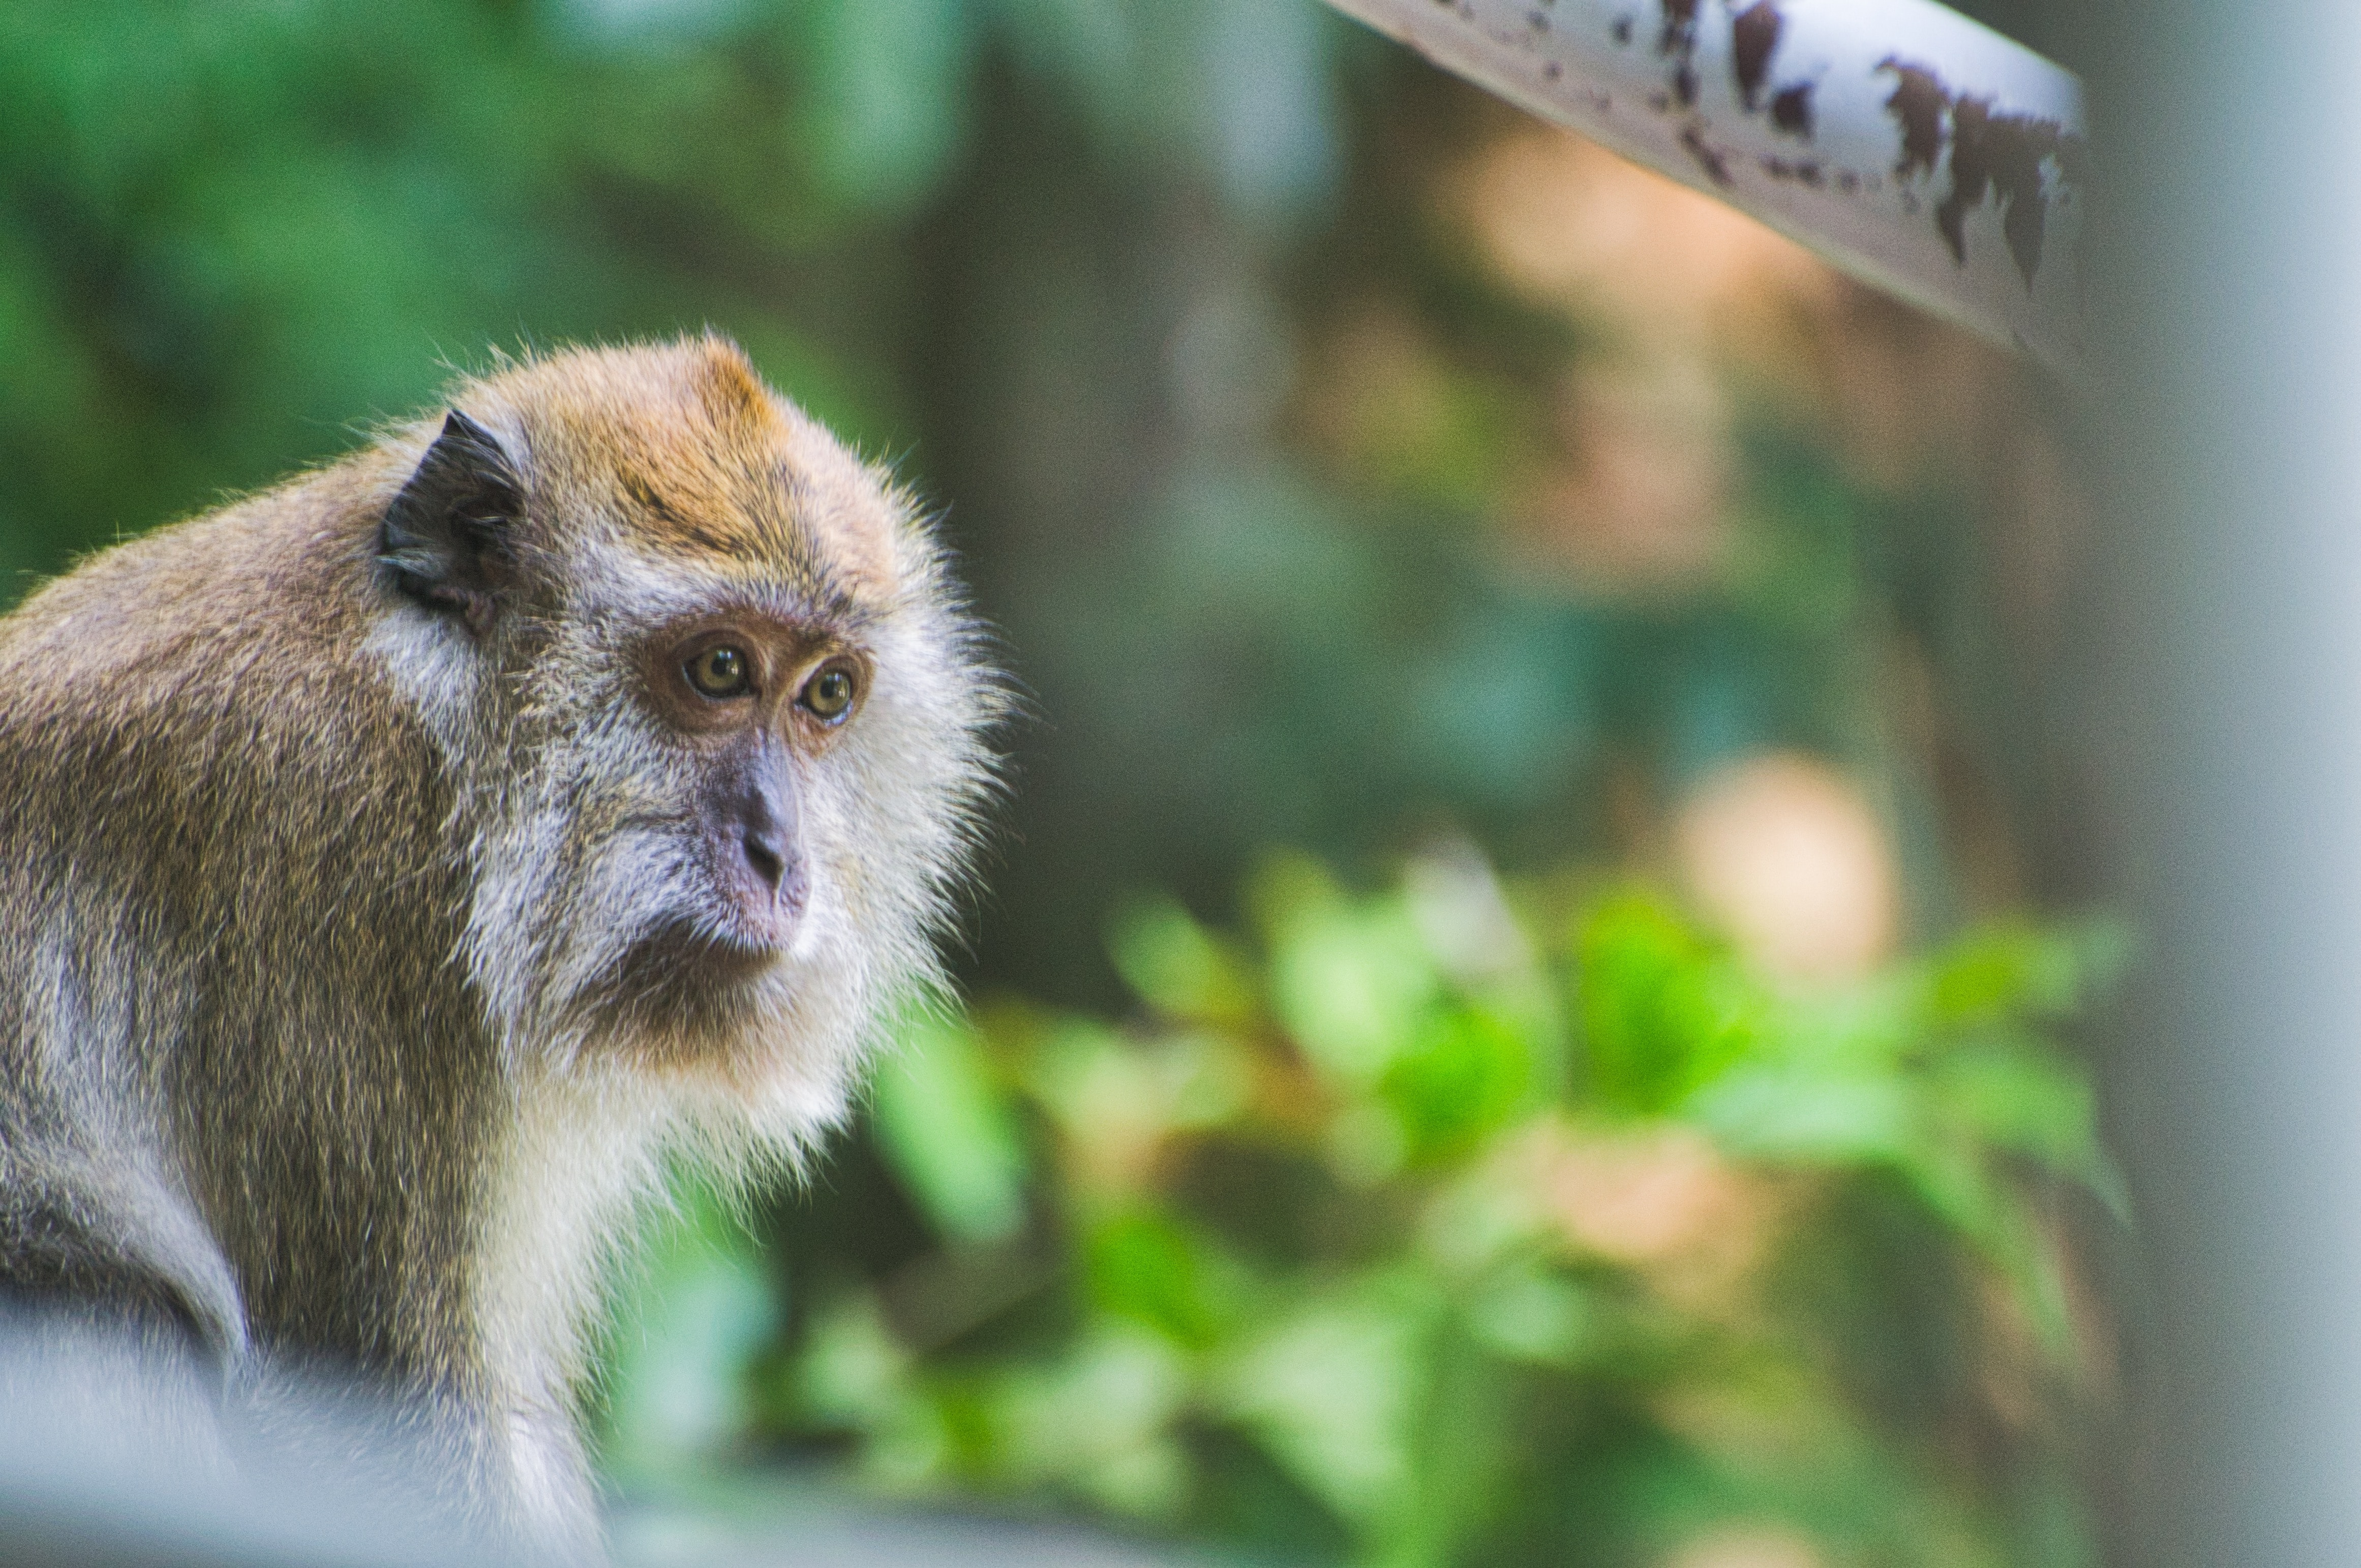 brown monkey in selective focus photography